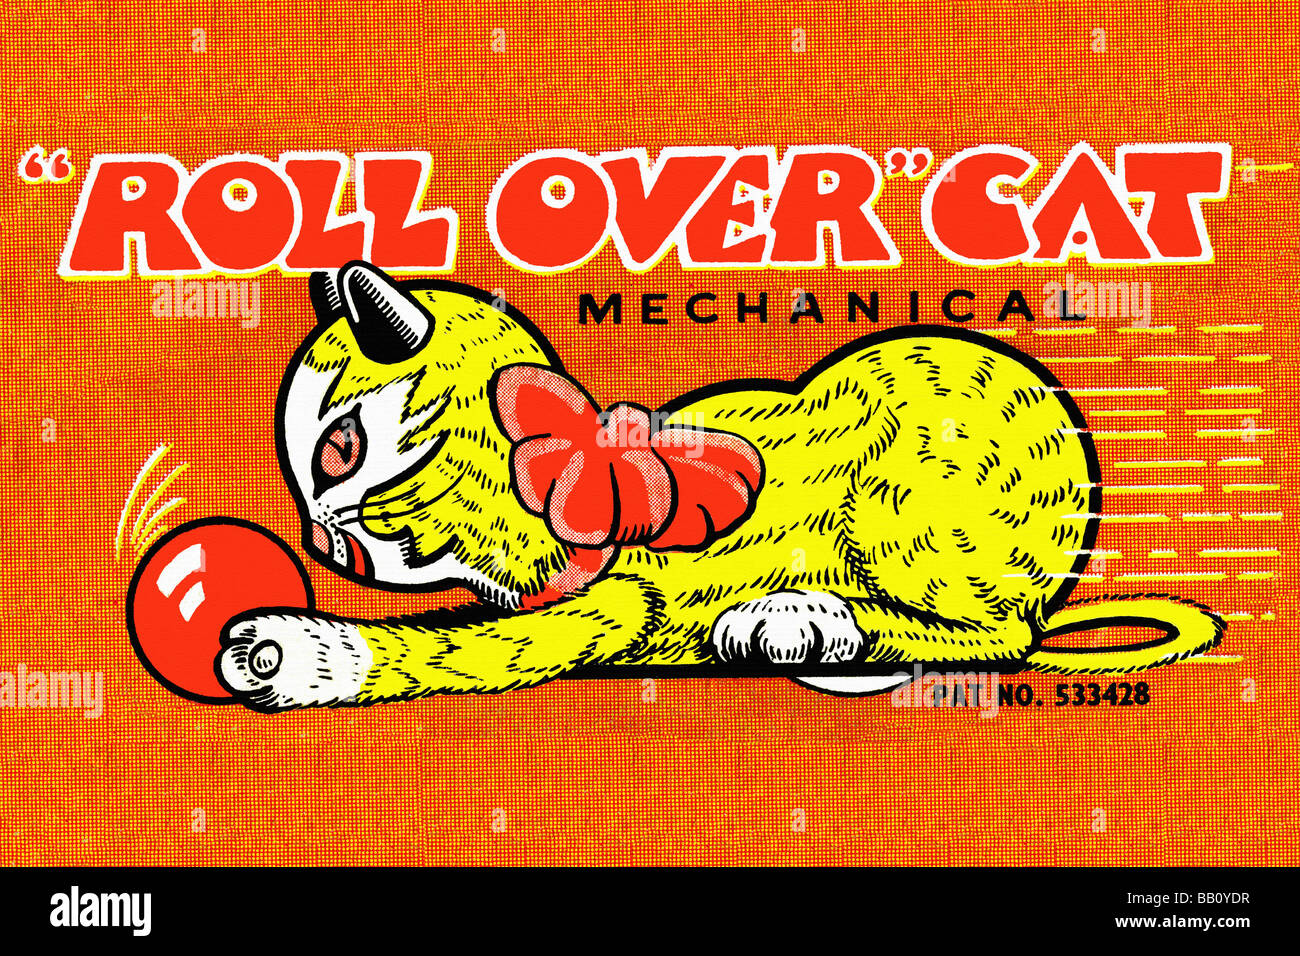 Roll Over Cat Stock Photo